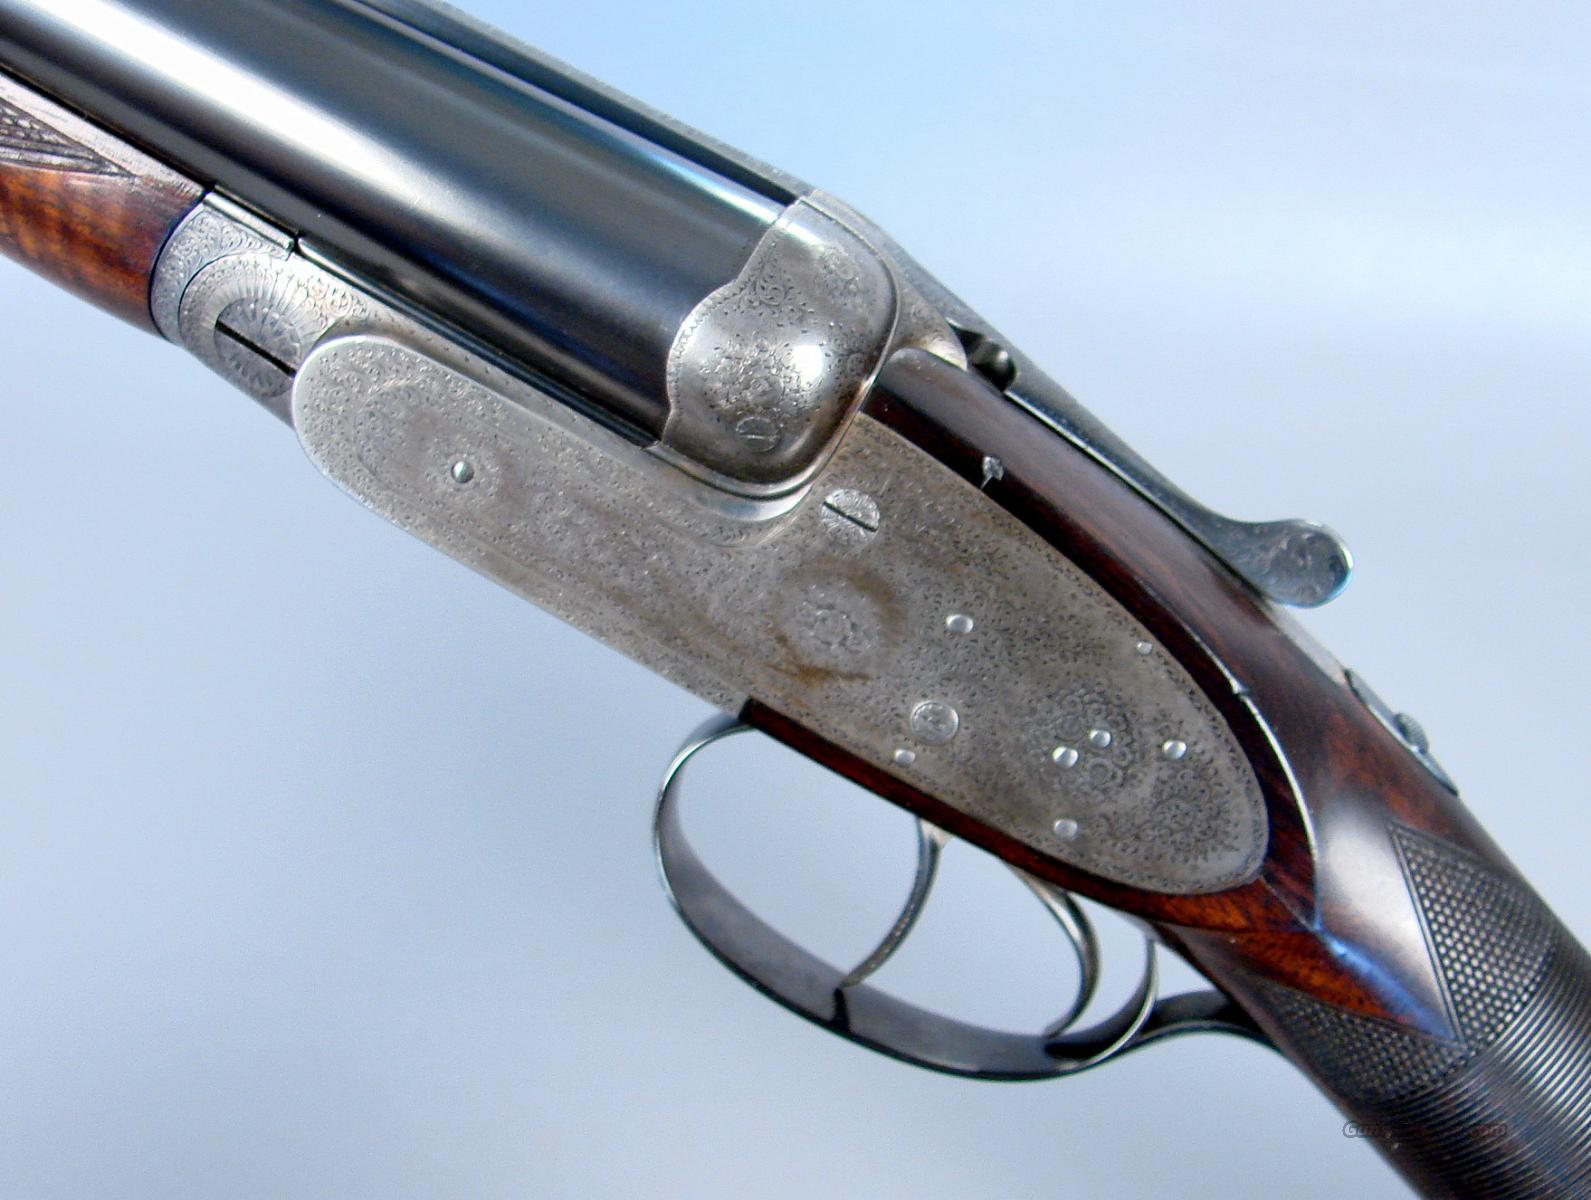 Purdey 12 Gauge BEST QUALITY Shotgun   Guns > Shotguns > Purdy Shotguns